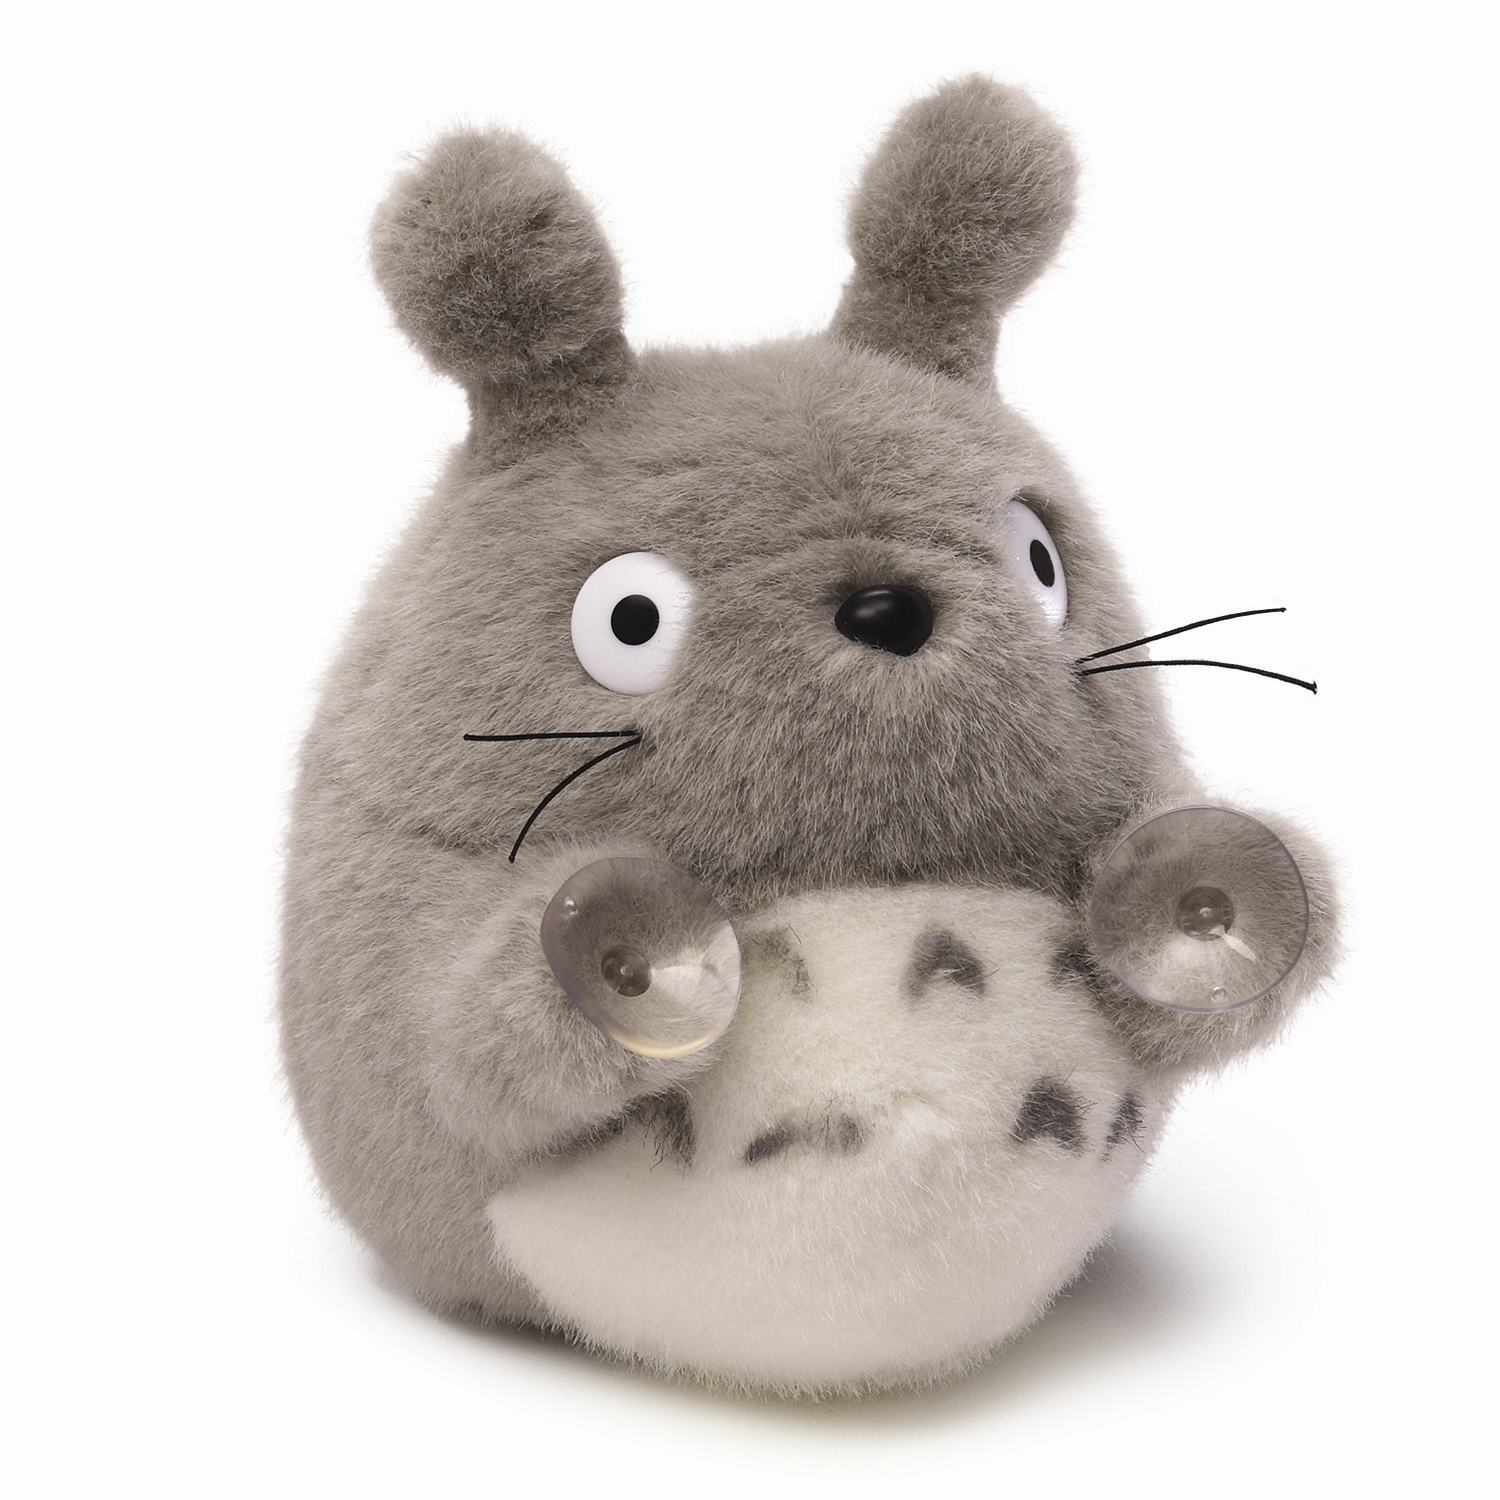 OH-TOTORO PLUSH W/SUCTION CUPS